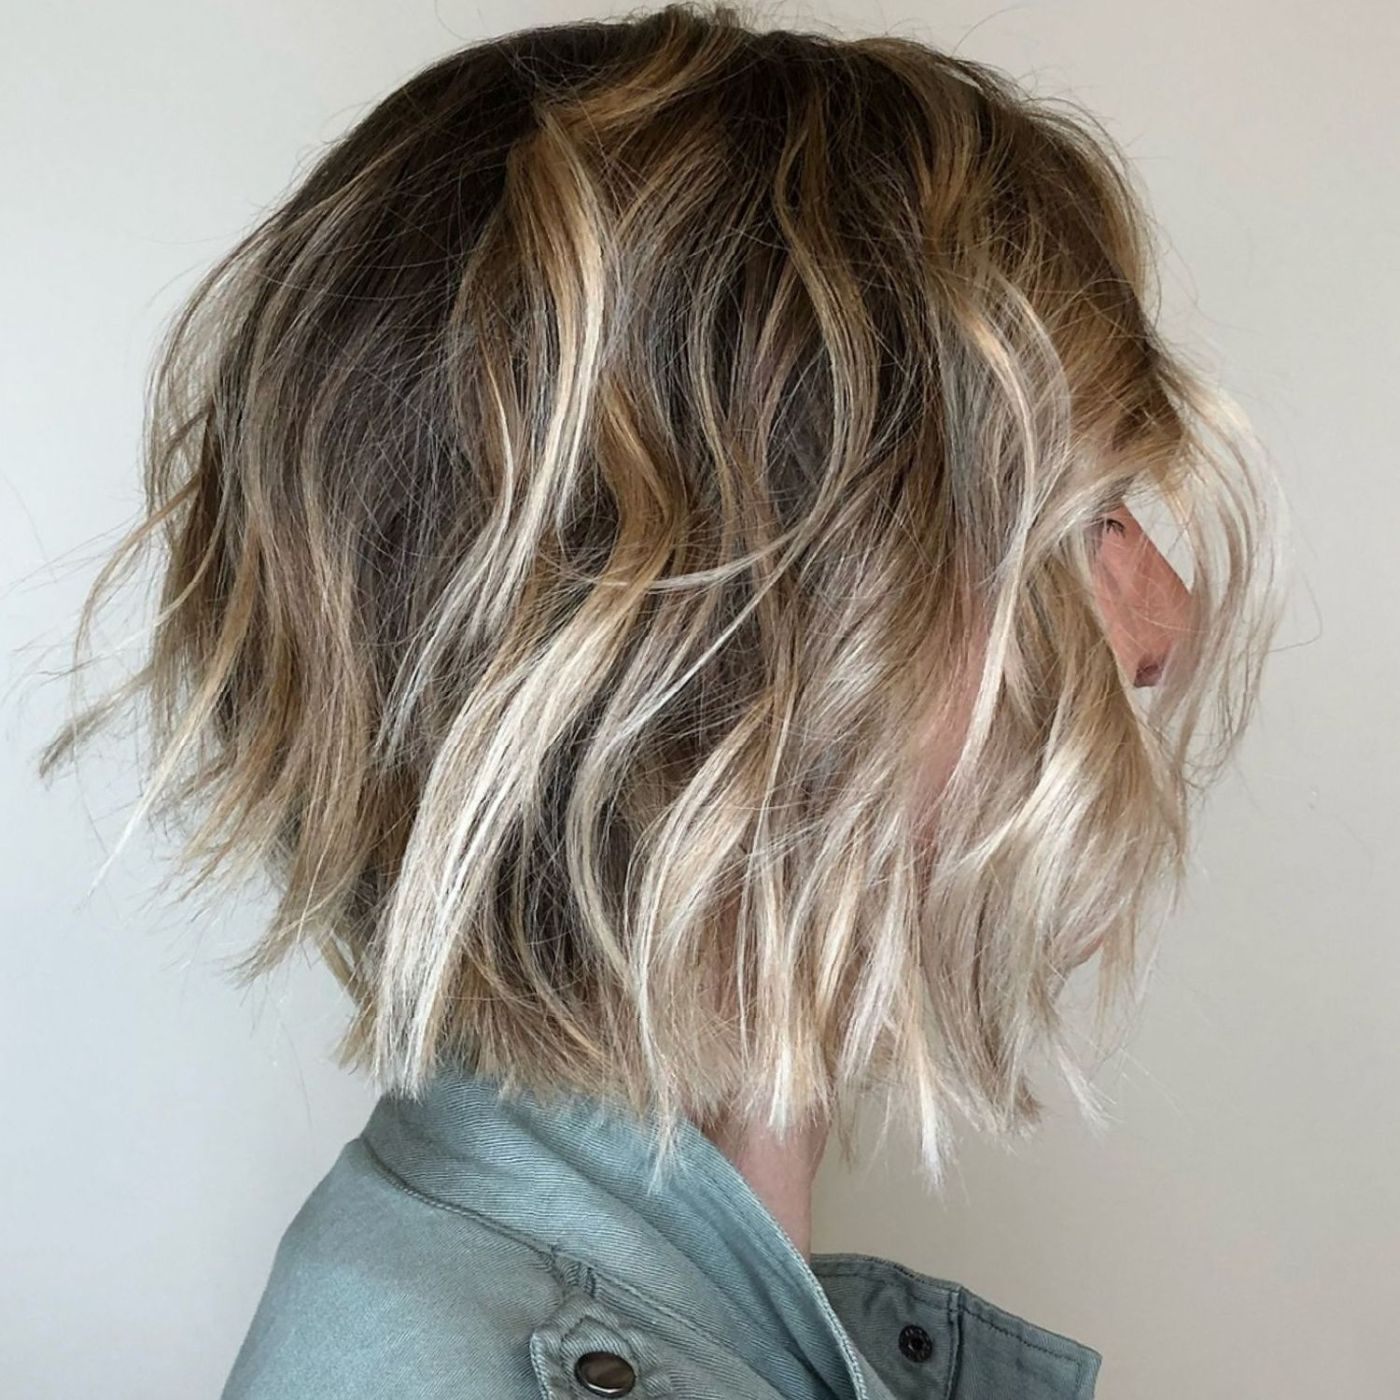 60 Short Shag Hairstyles That You Simply Can T Miss Short Shag Hairstyles Choppy Haircuts Short Choppy Haircuts